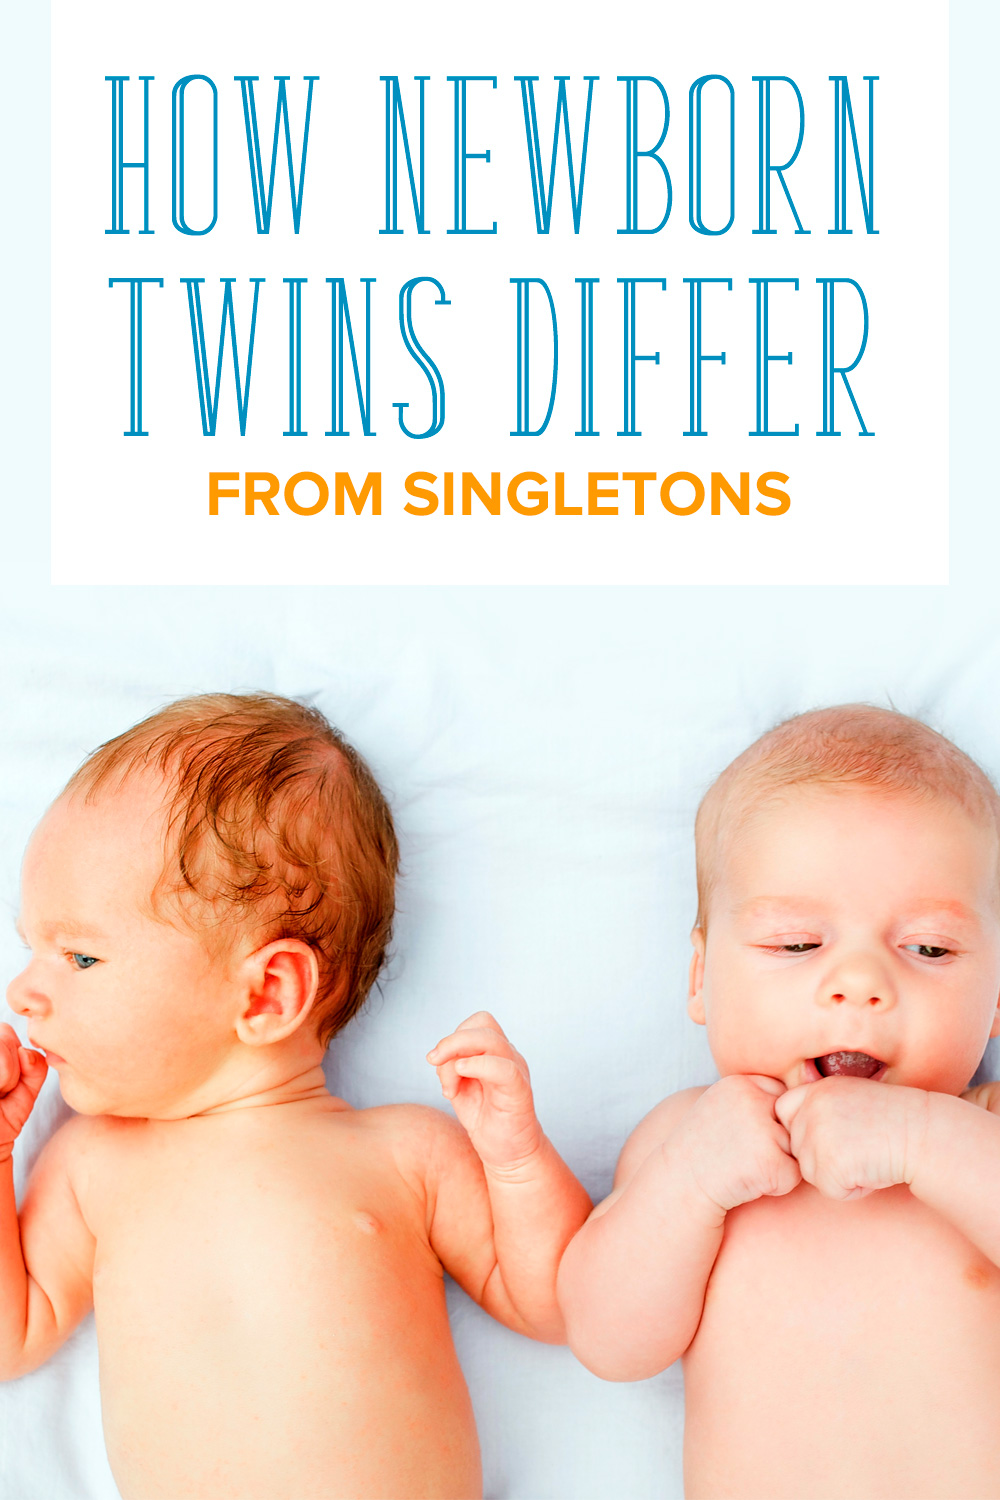 Wondering how to manage dealing with newborn twins? Caring for twins is different from caring for singletons. Here are the differences between newborn twins and newborn singletons. Get the tips and advice you need for surviving twin babies! Even includes a FREE email course, Bringing Home Twins, to help you feel better prepared to welcome your twins home! #twins #TwinLife